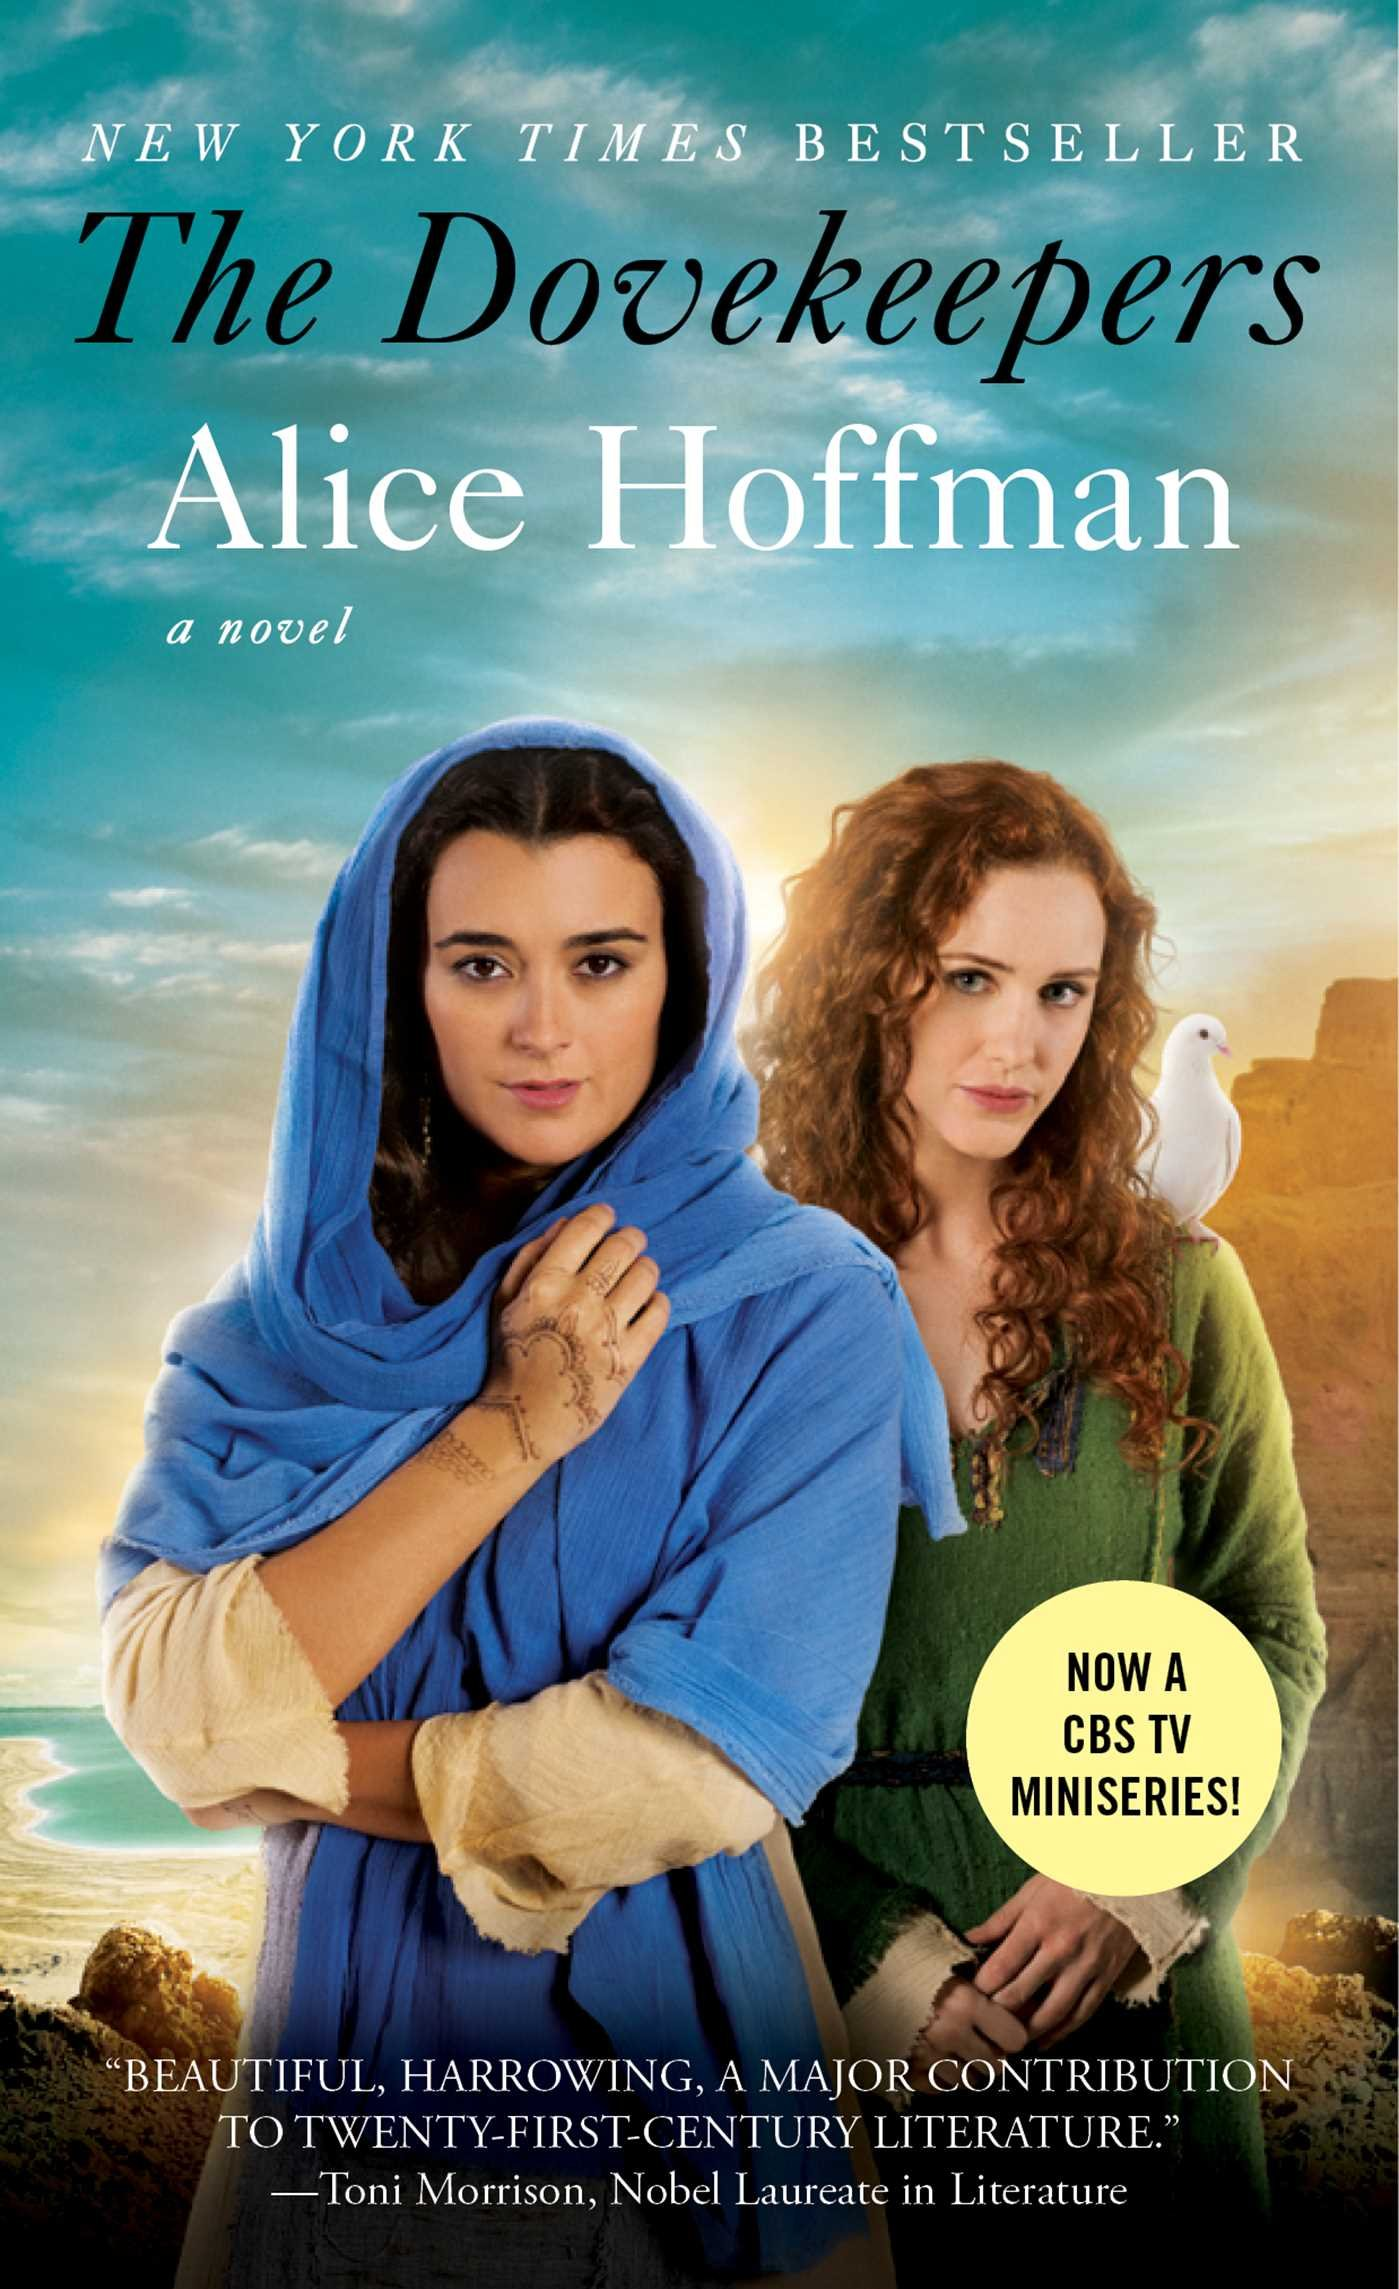 Amazon.com: The Dovekeepers: A Novel (9781501103711): Alice Hoffman: Books